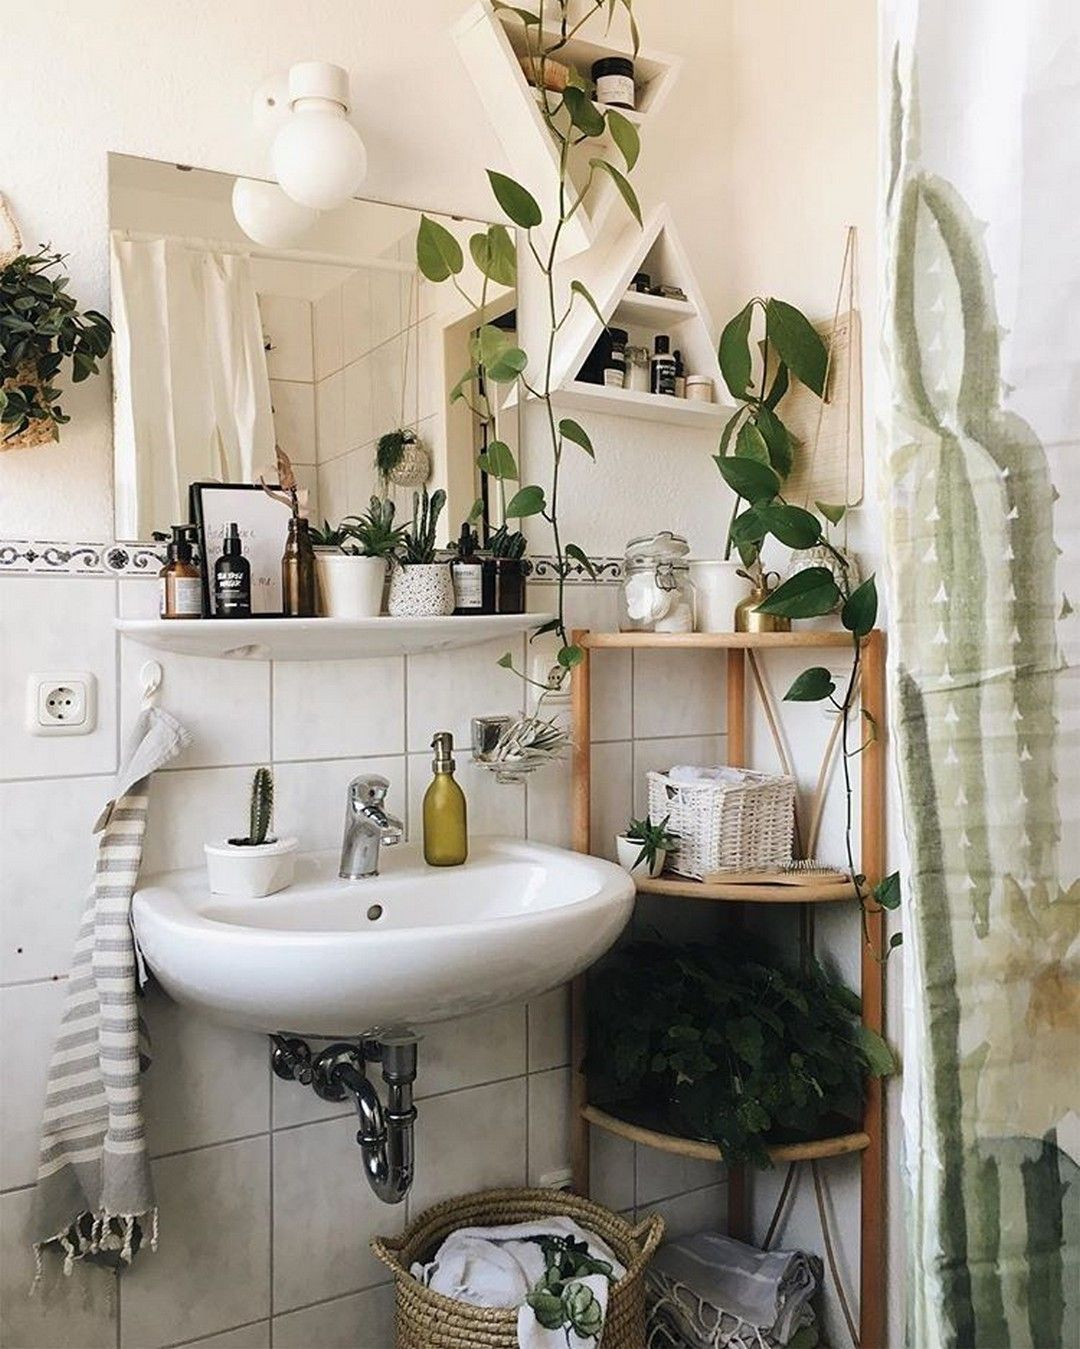 38 Ultra Clever Ideas For Decorating Small Dream Bathroom Elegant Bathroom Small Bathroom Decor Home Decor Home decor dream decorate small bathroom